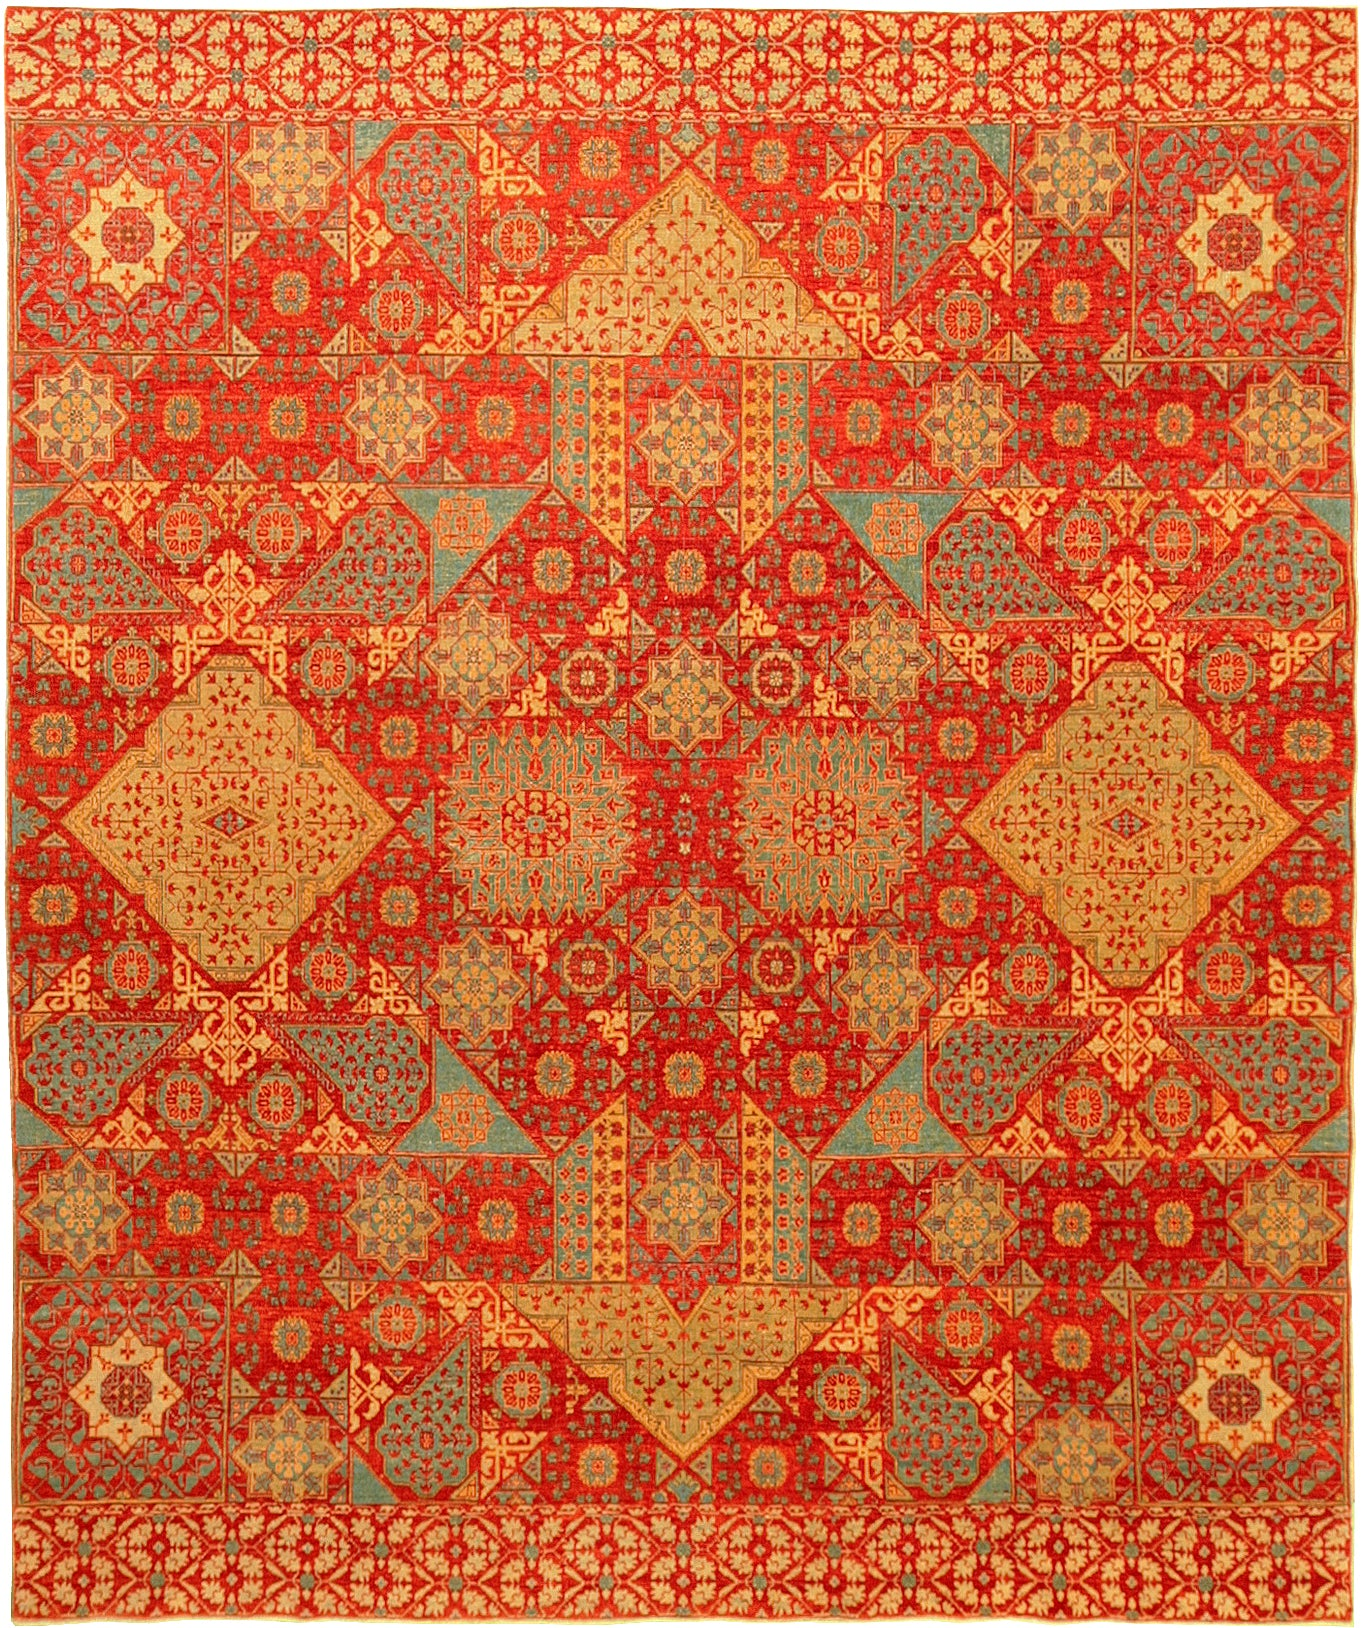 Mamluk Design Turkish-Turco Persian Rug Company Inc.